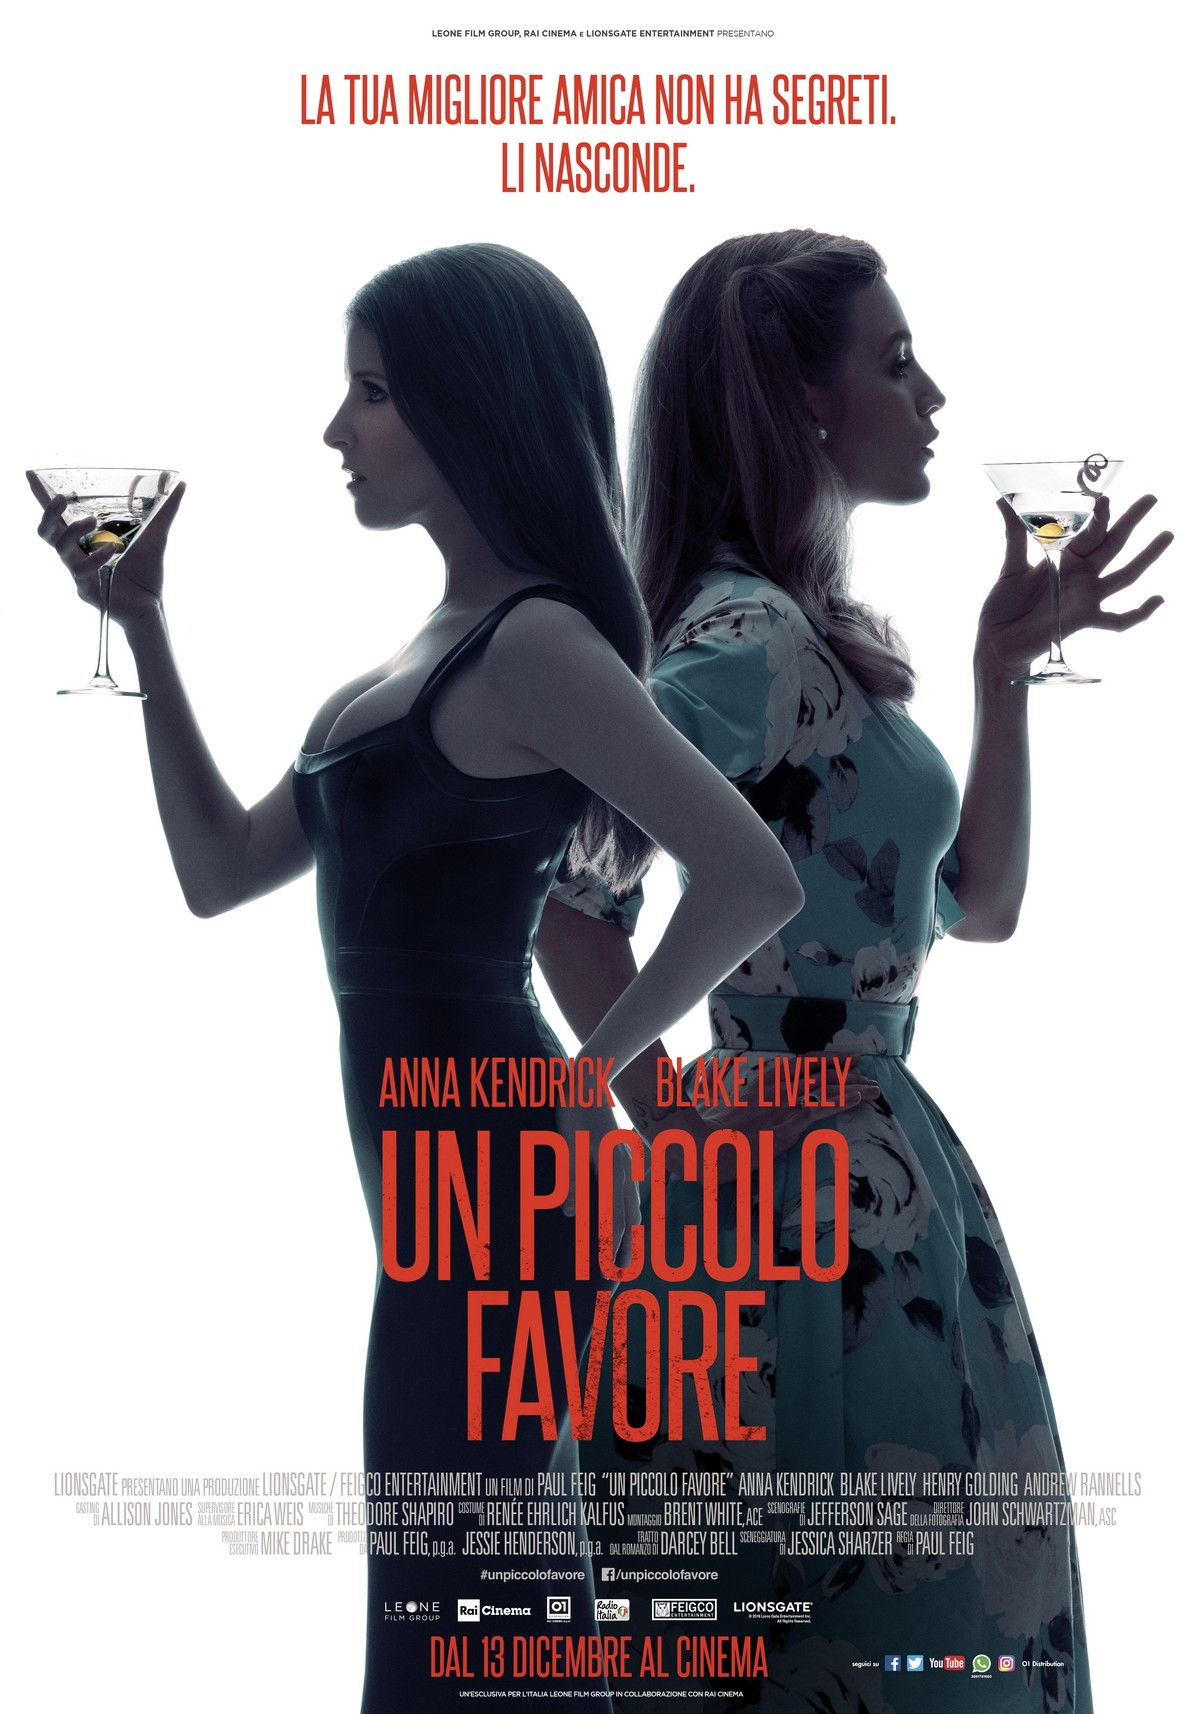 Un piccolo favore trailer